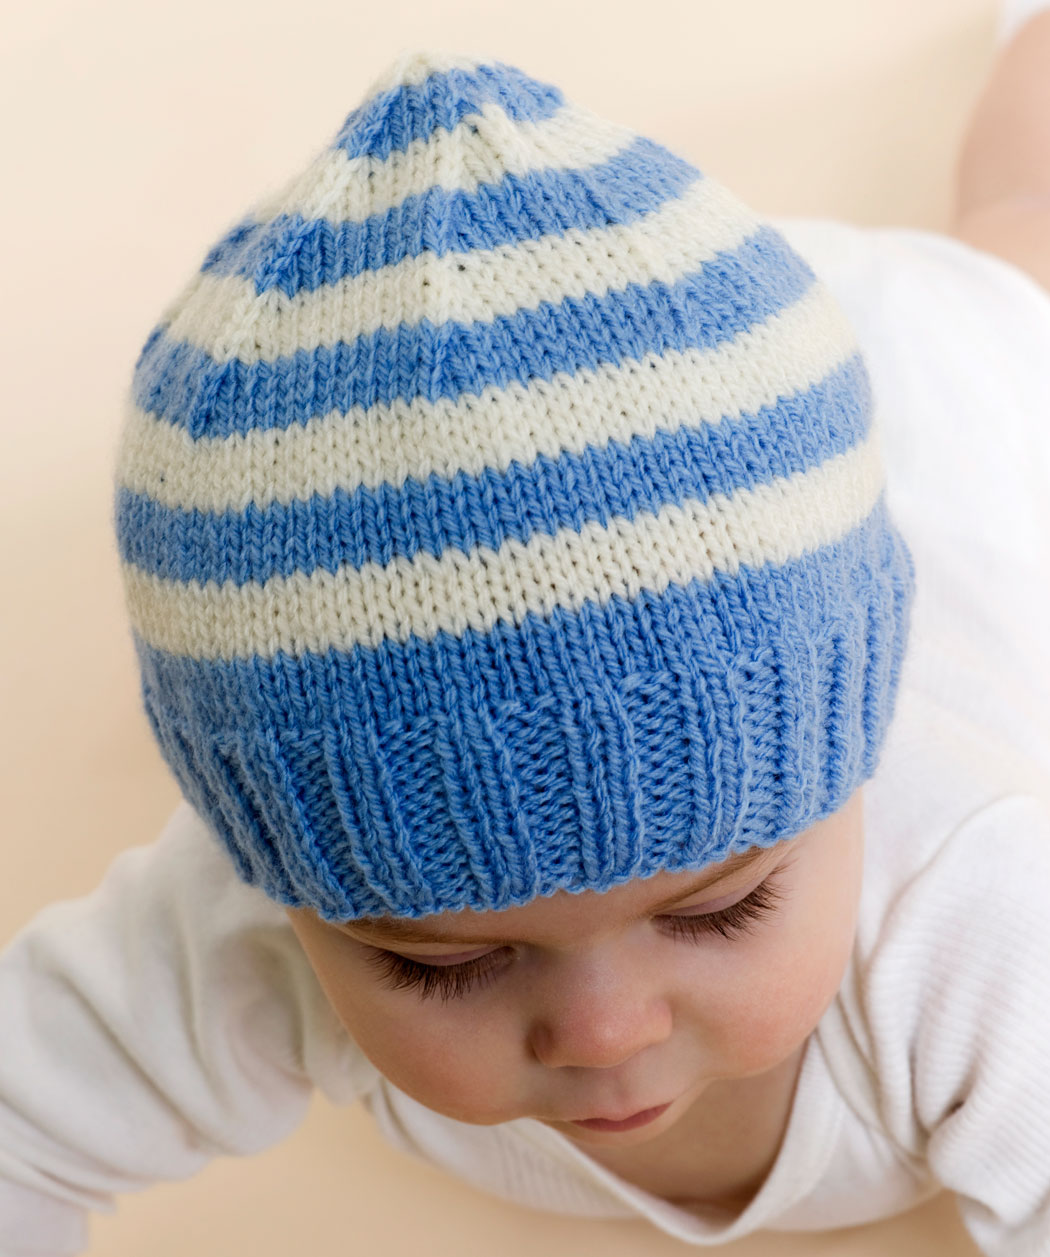 Knitting Patterns Free Baby : Knitting Hats   Tag Hats